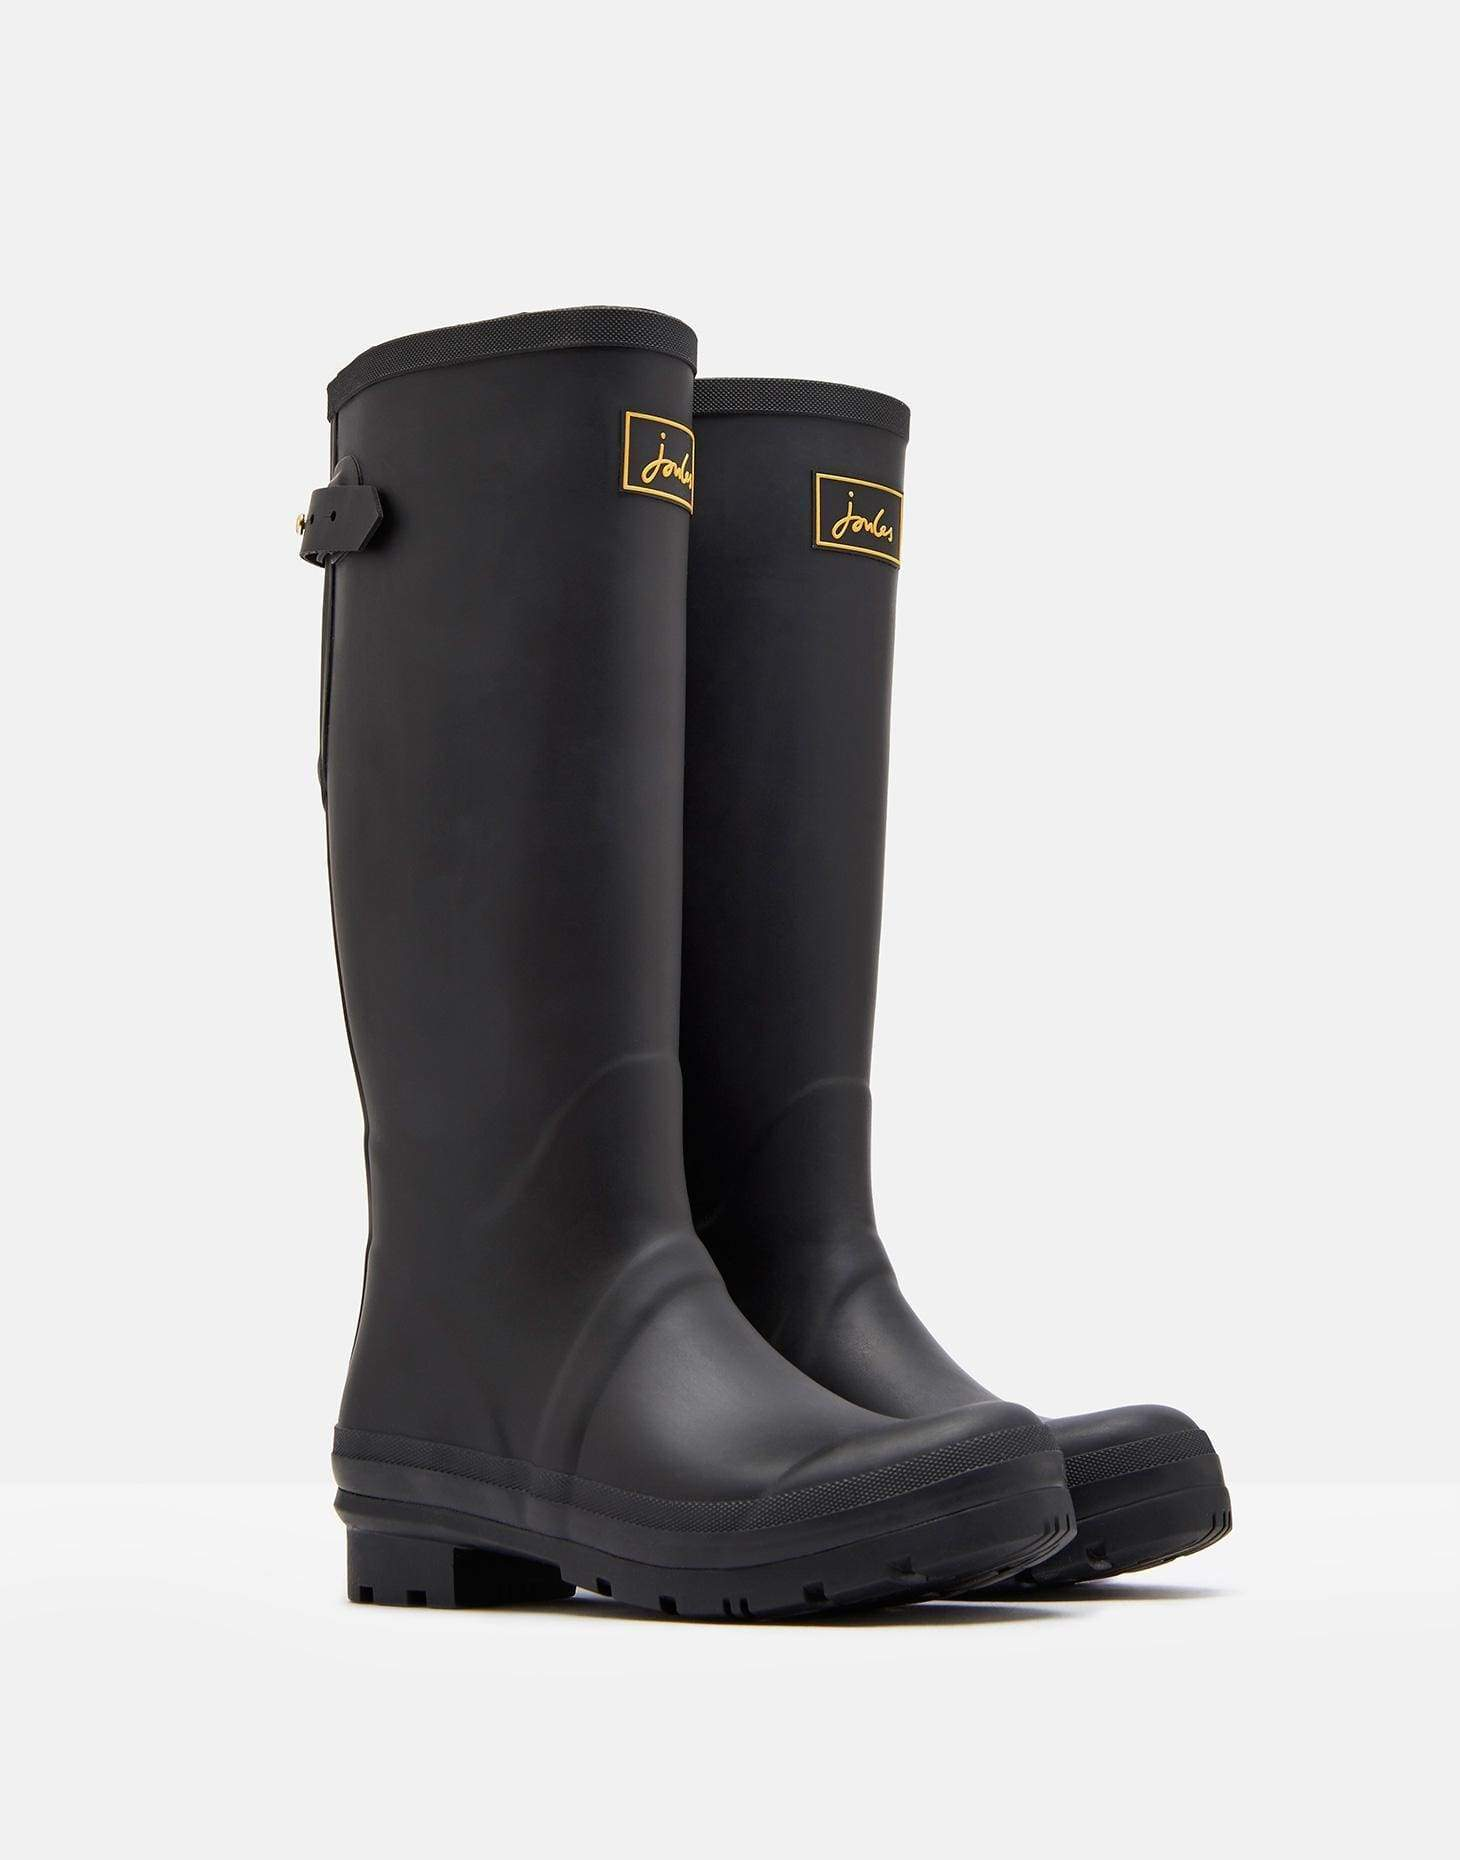 Joules Field Welly True Black Női gumicsizma